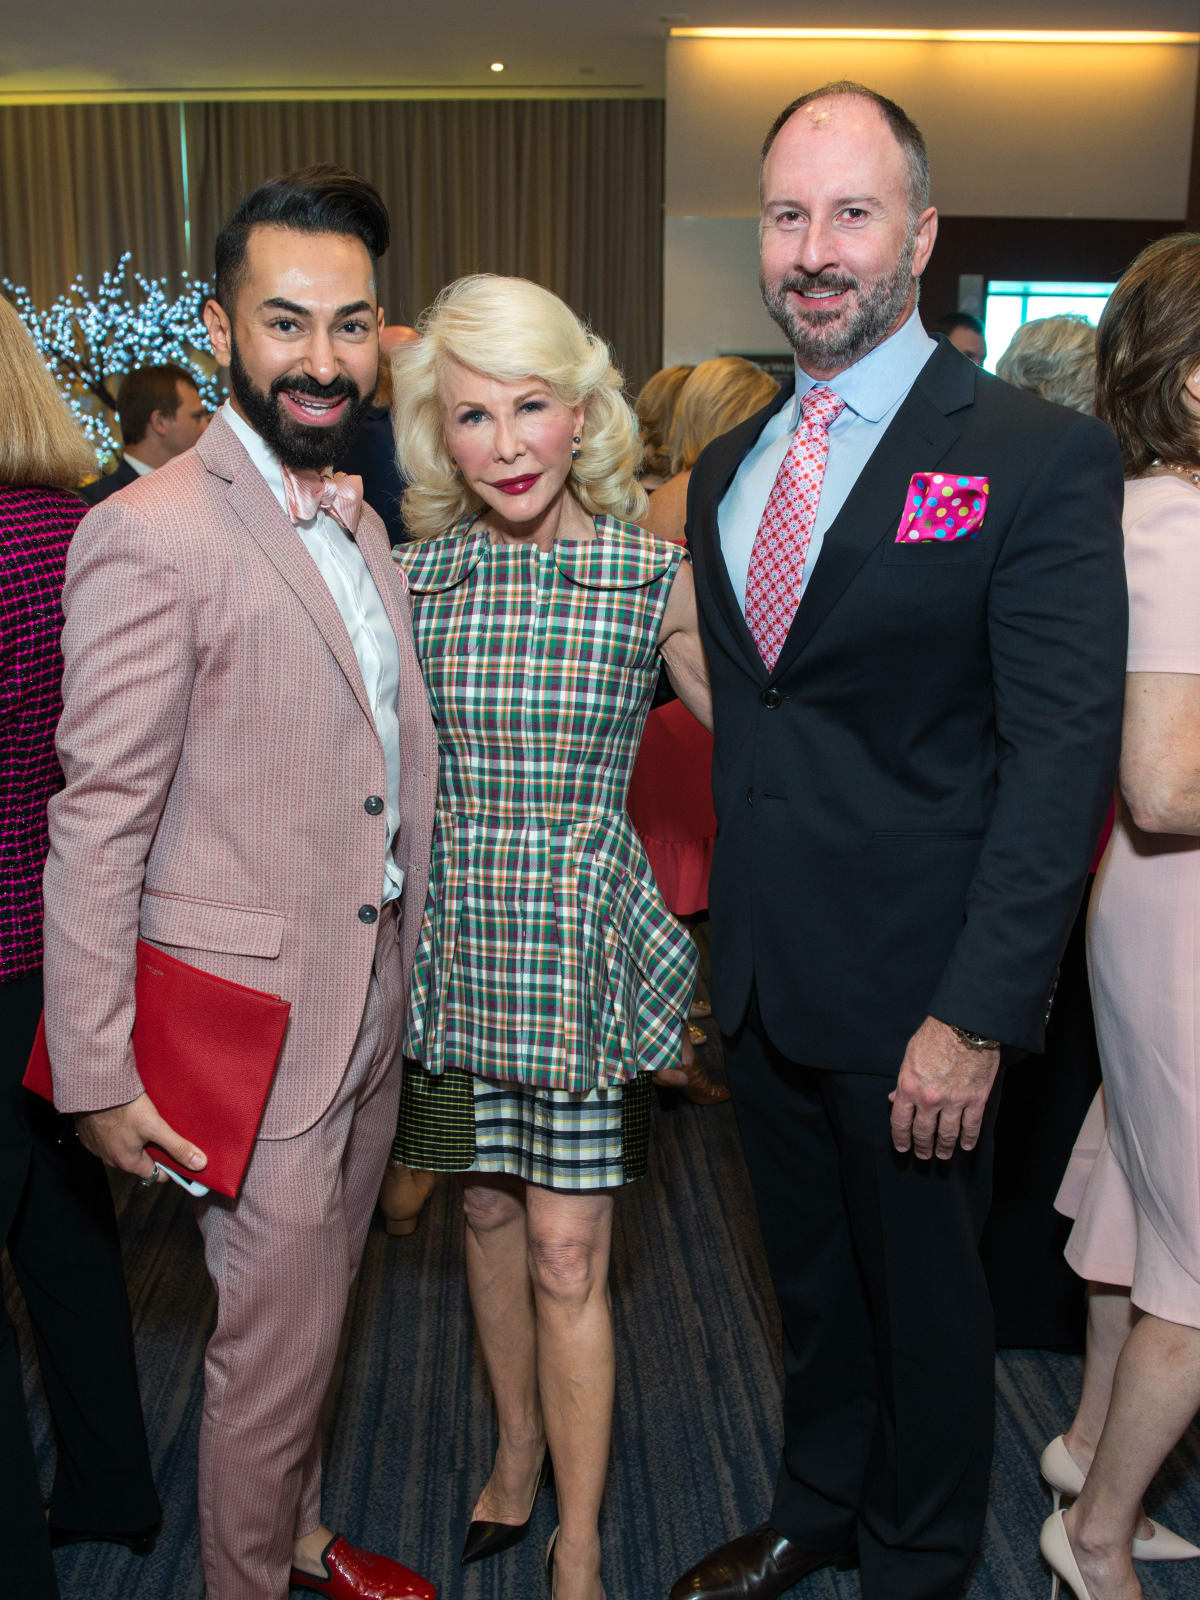 Fady Armanious, Diane Lokey Farb, Tony Bradfield at Memorial Hermann Razzle Dazzle luncheon